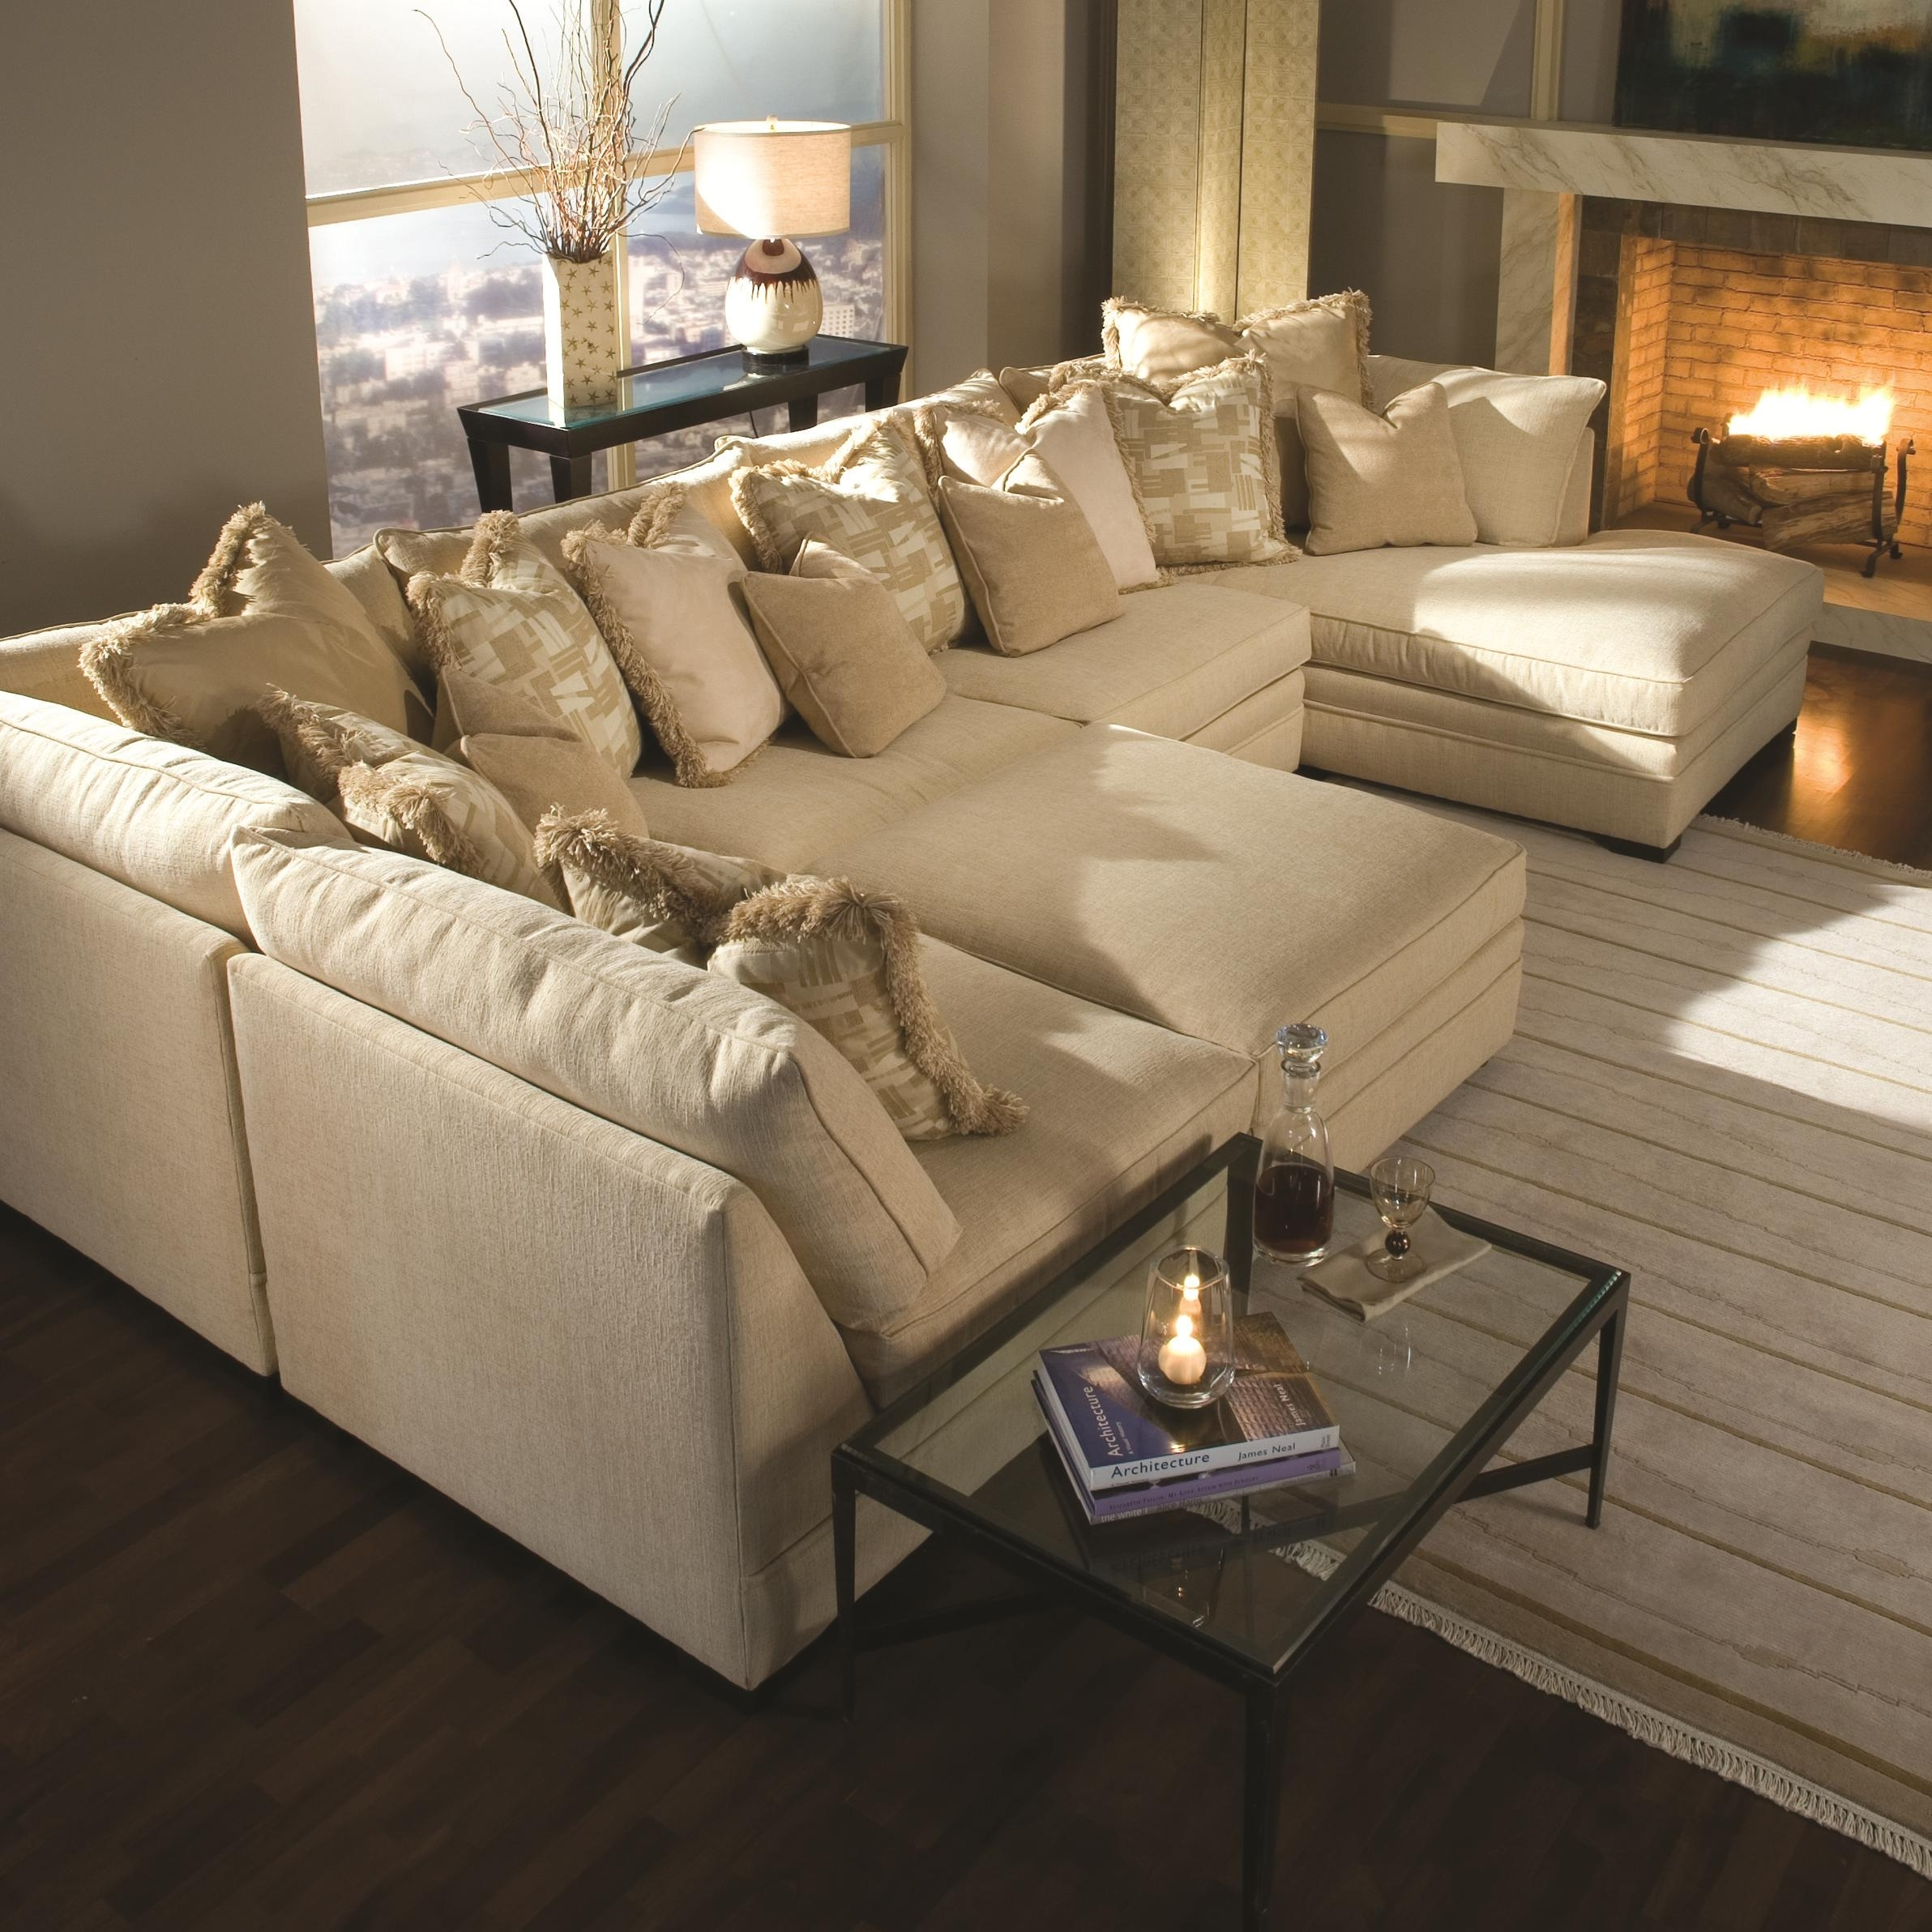 Sectional Sofas Mississauga | Functionalities Throughout Mississauga Sectional Sofas (View 9 of 10)